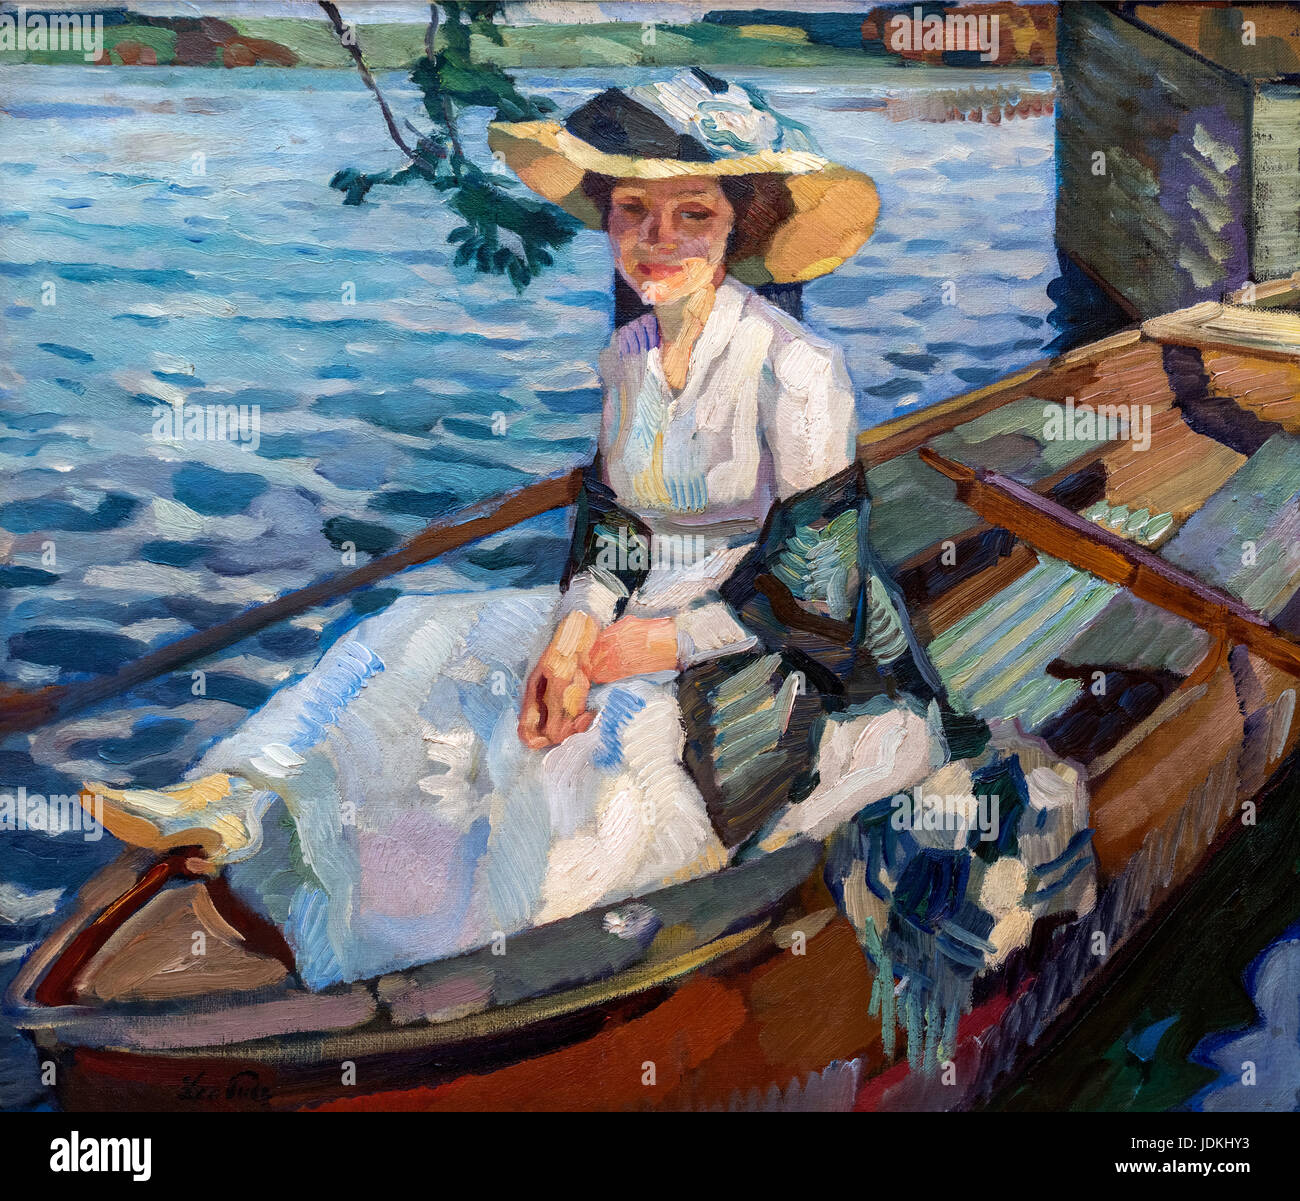 Lady in a Boat (Dame im Kahm) by Leo Putz (1869-1940), 1910 - Stock Image